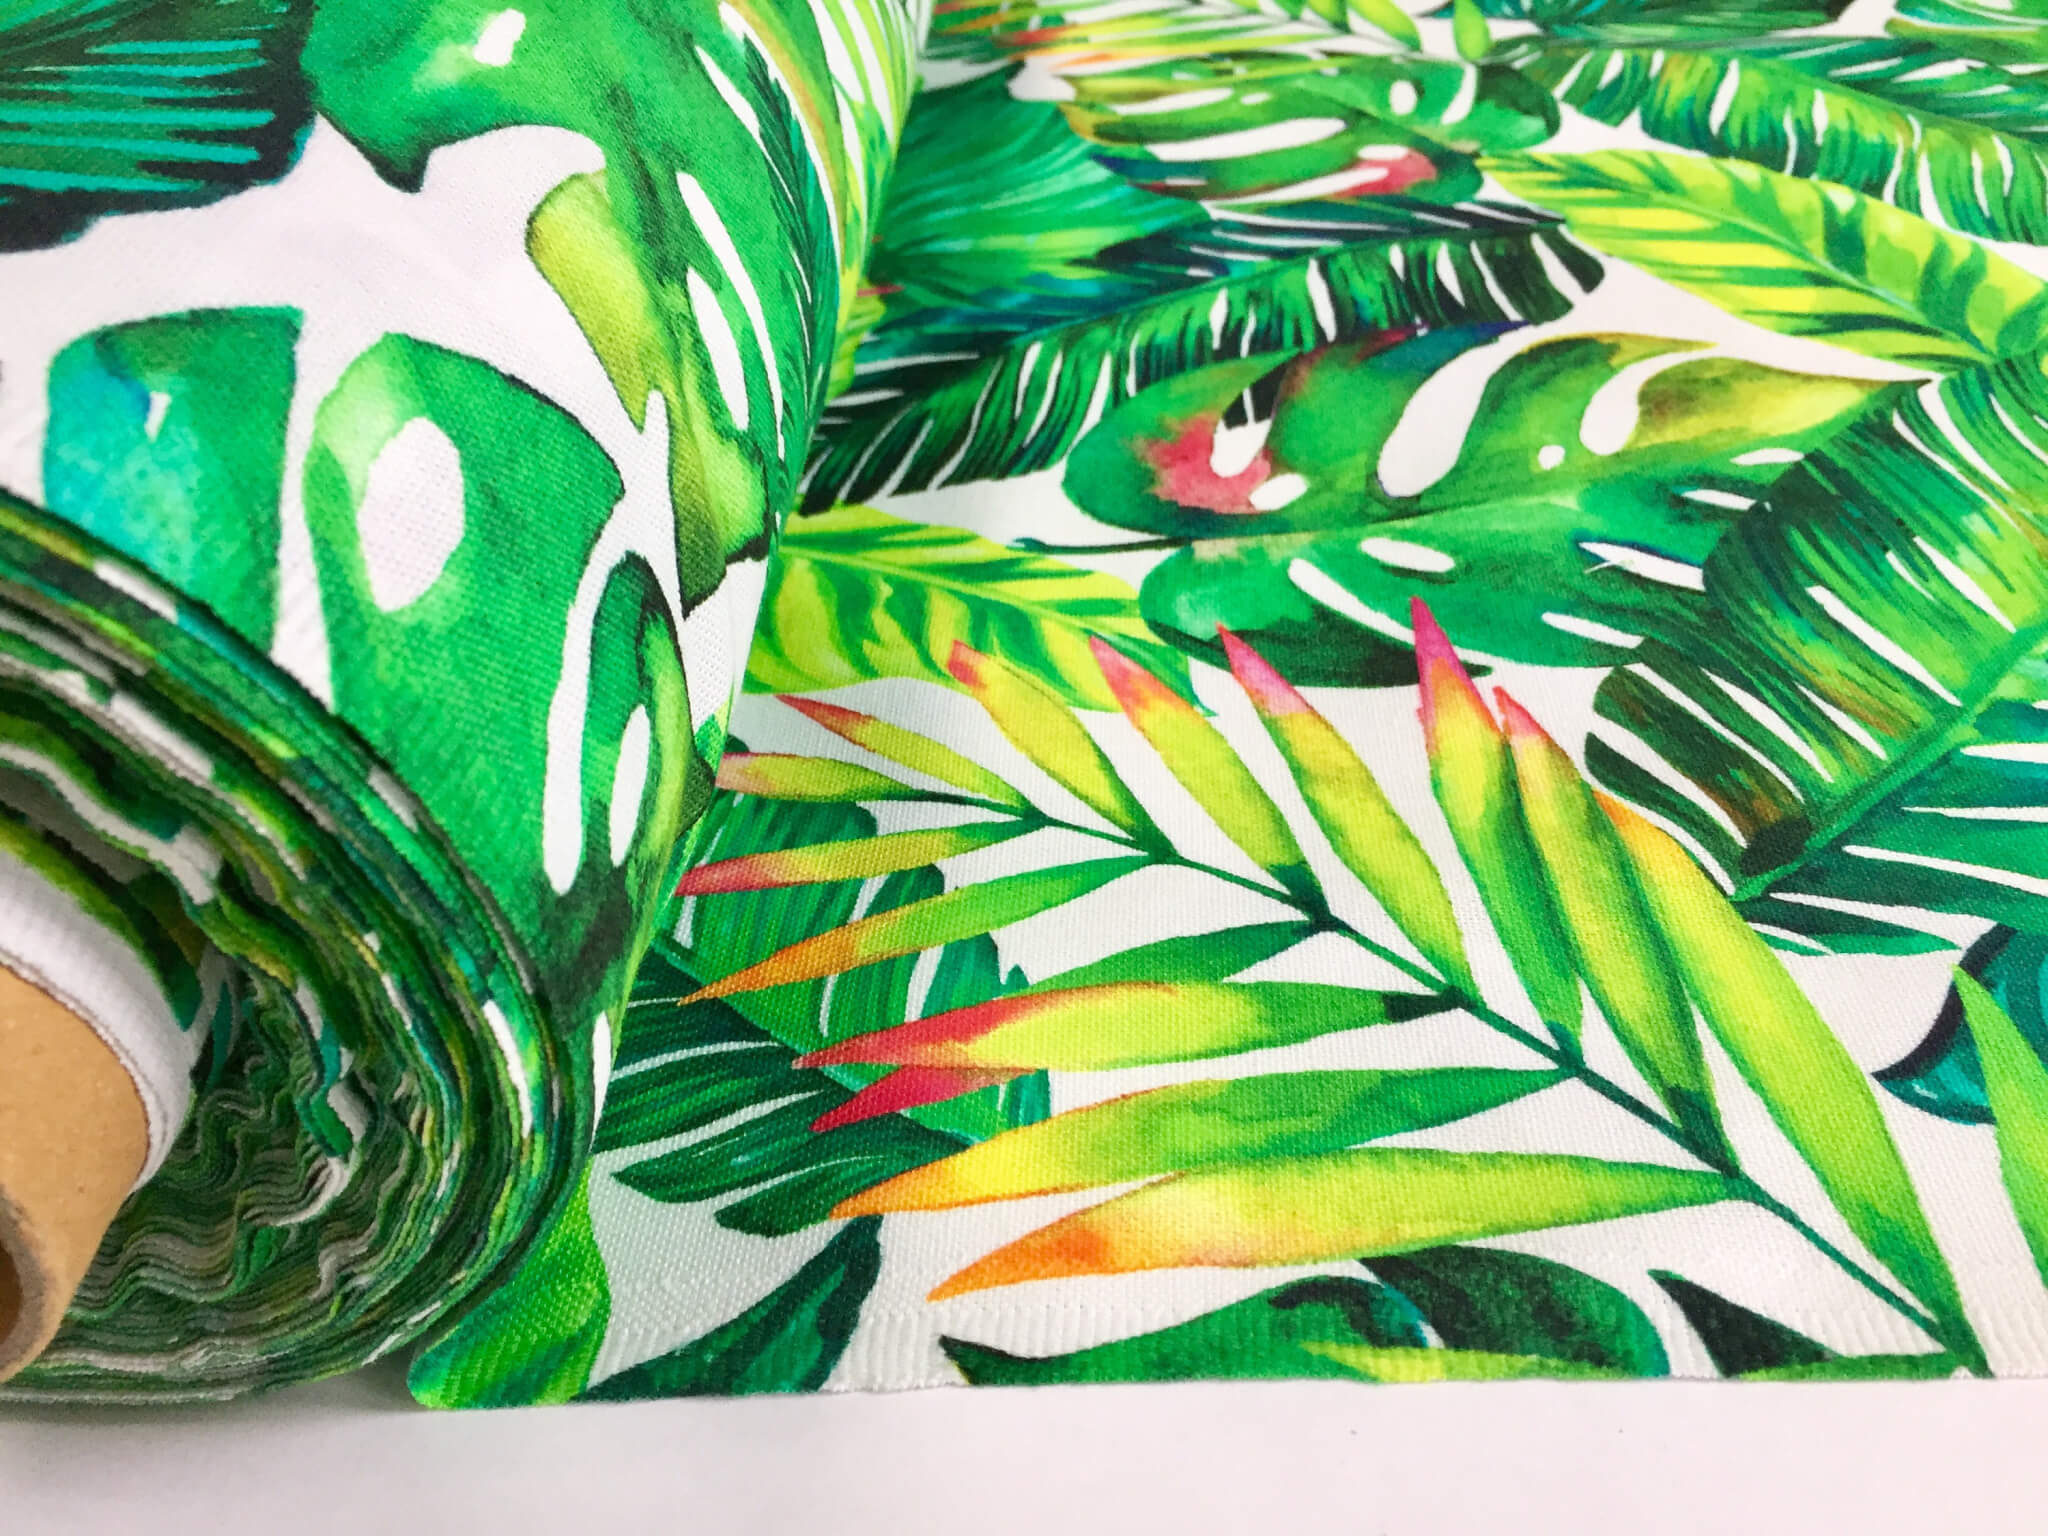 palm-leaves-3-tropical-leaf-print-cotton-fabric-for-curtain-upholstery-material-digital-print-fabric-140cm-wide-5adde6a21.jpg